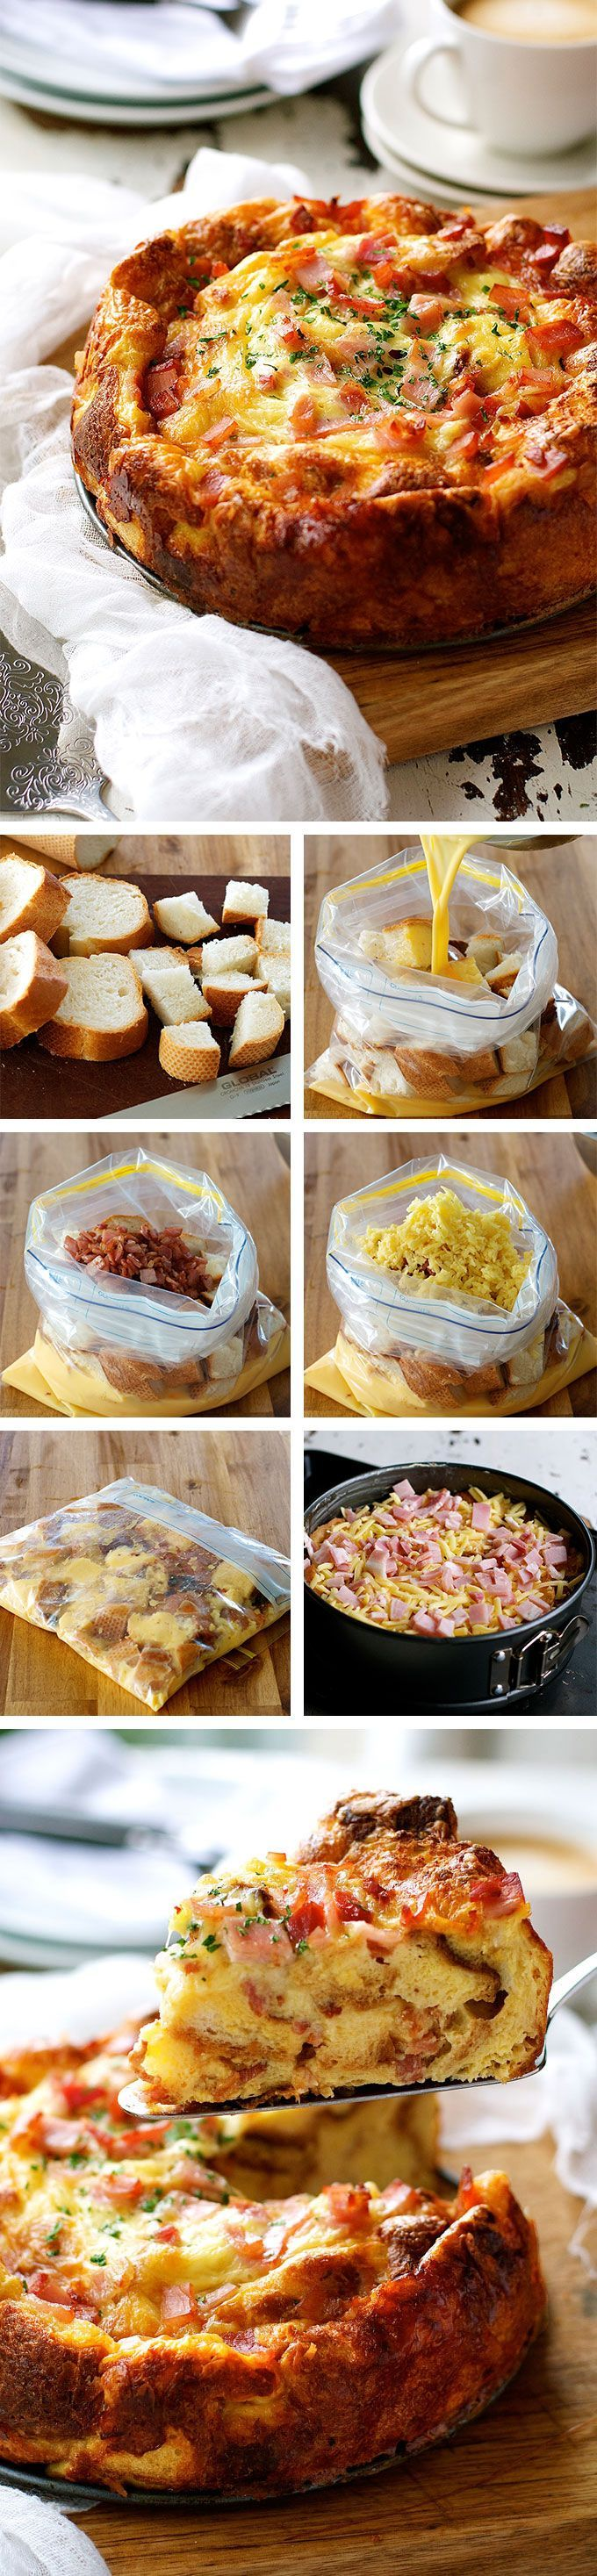 .~Cheese Bacon Strata Cake (Savoury Bread Pudding / Bread Bake) - made with just bread, eggs, milk, cheese and bacon. Great make ahead for feeding a crowd~.